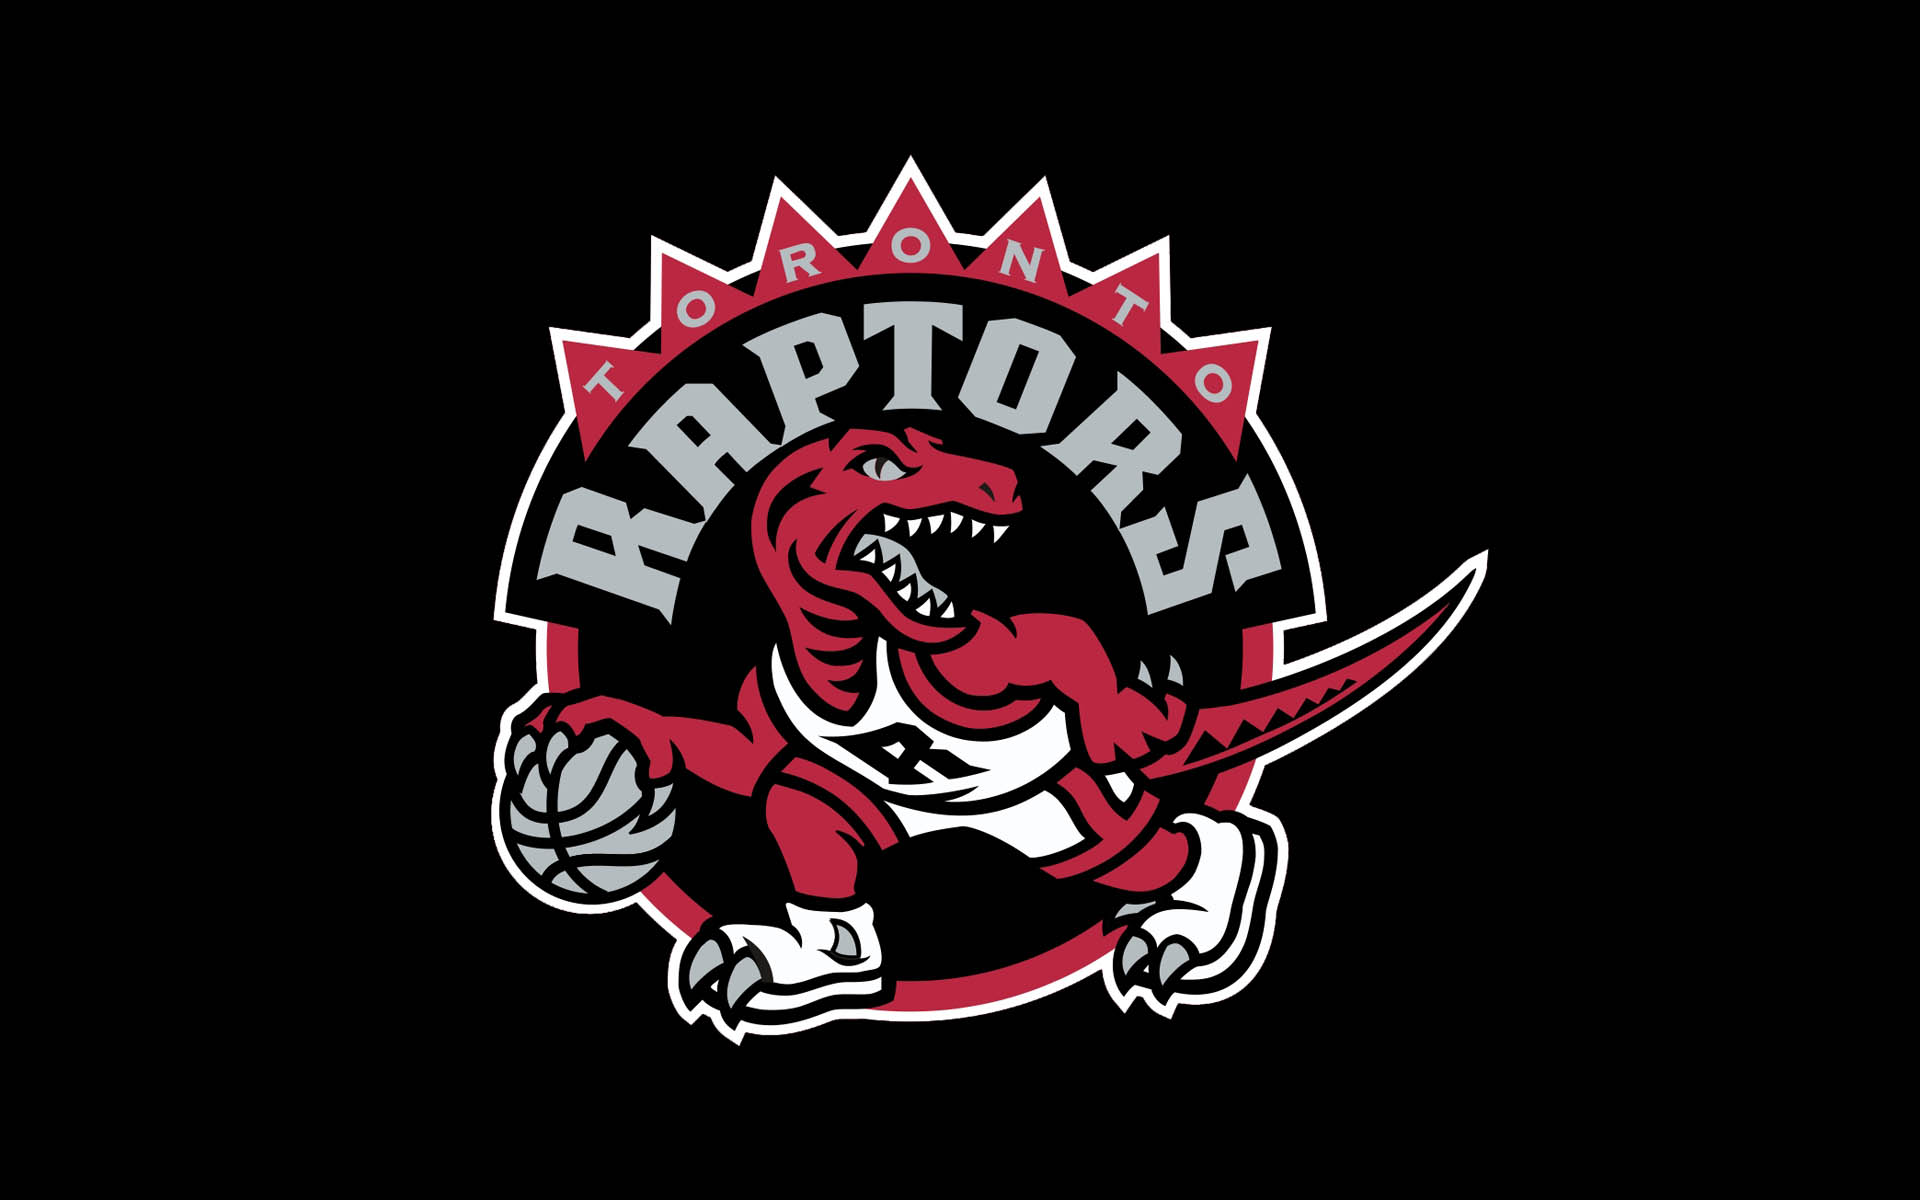 Toronto Raptors Wallpaper 1920x1200